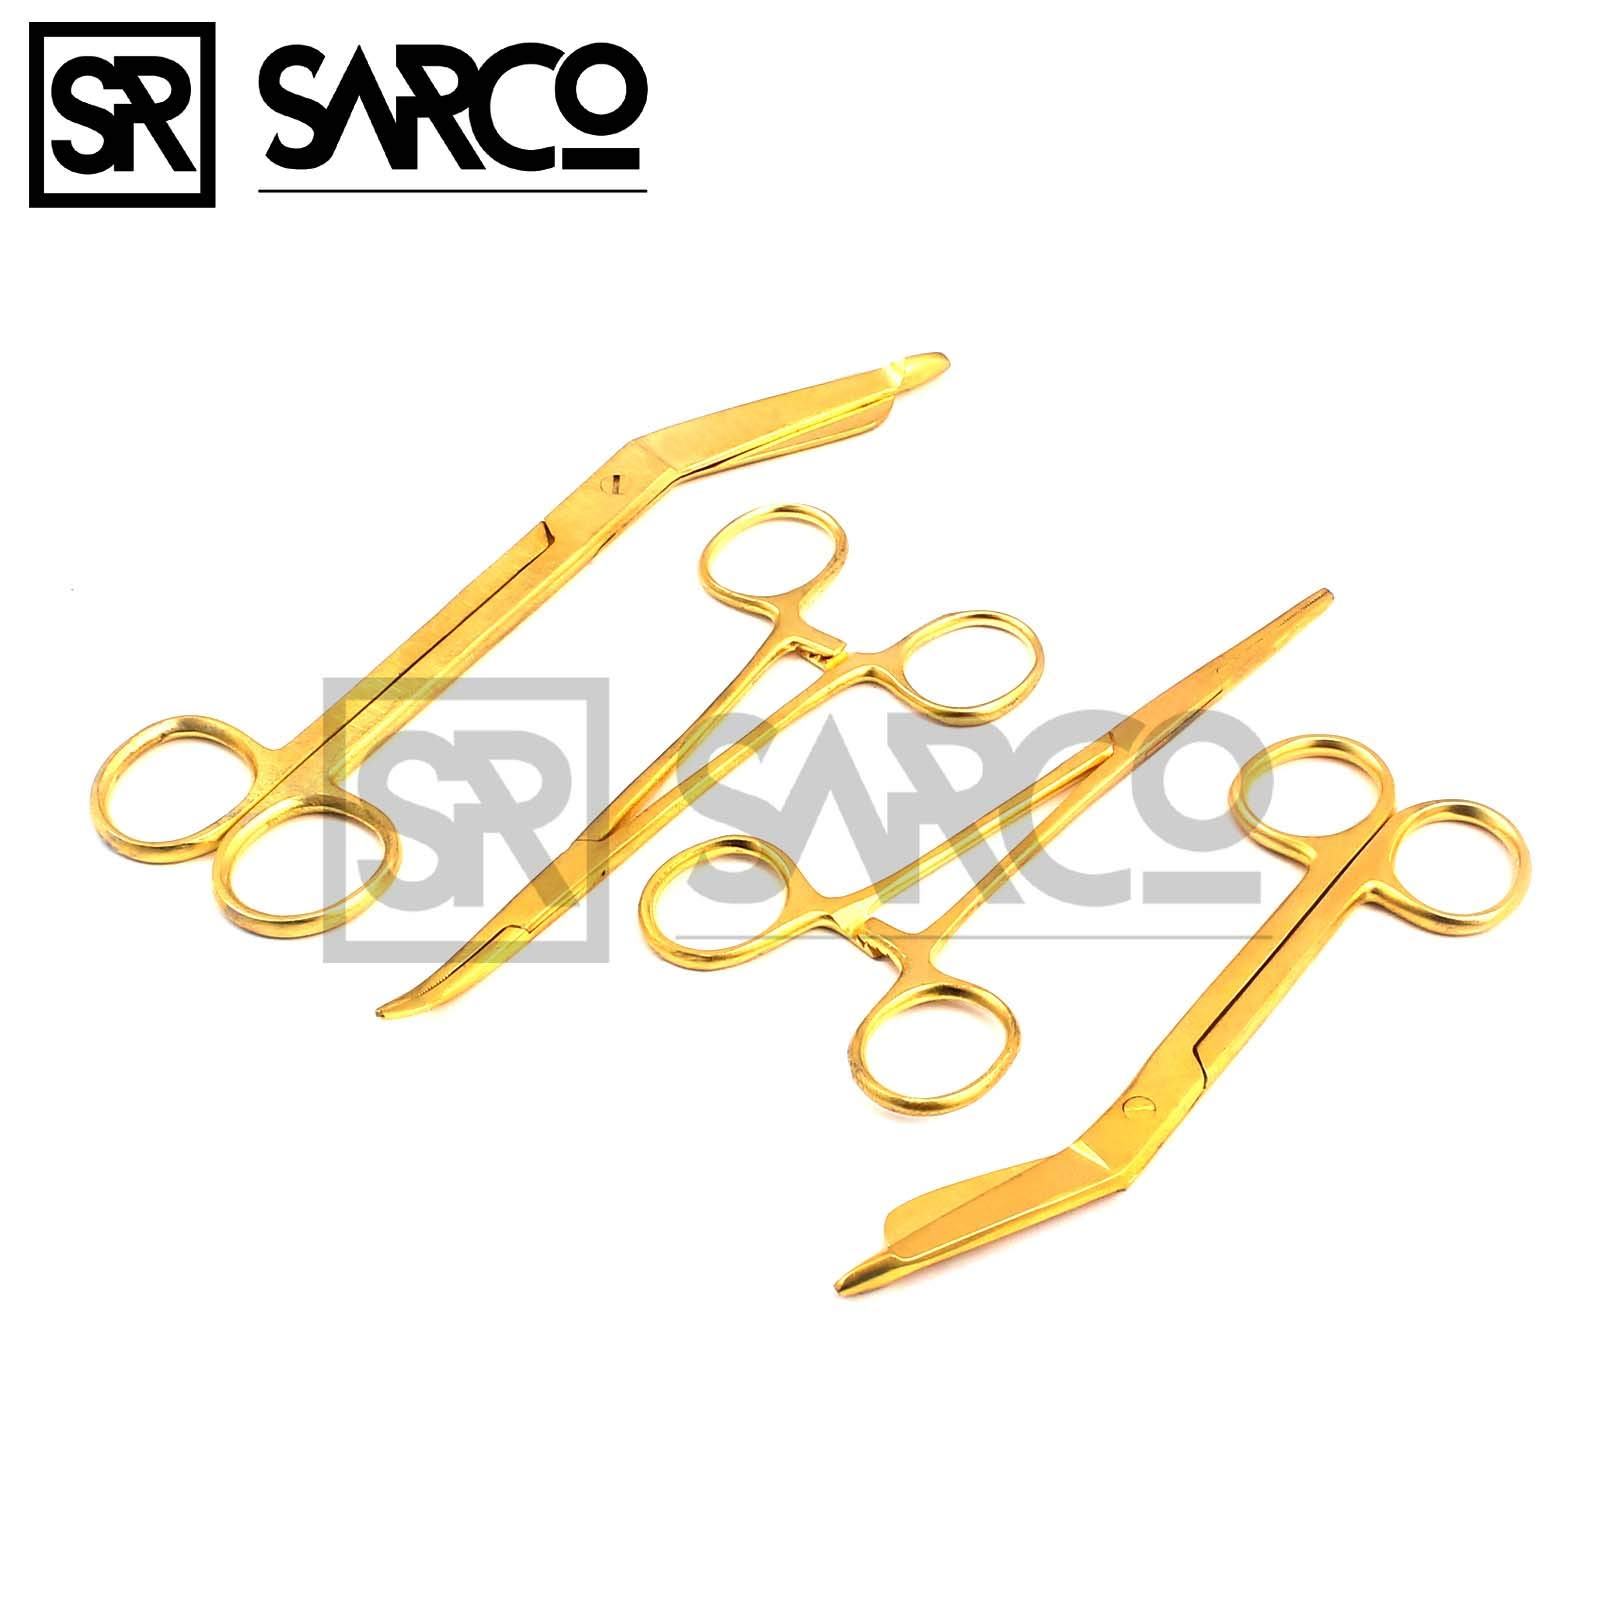 Sarco Premium German Stainless Lister Bandage Scissors 7.25'' + 5.5'' HEMOSTAT Forceps Straight + Curved 5.5'' Gold Color Stainless Steel -A+Quality Guaranteed (Set of 4)